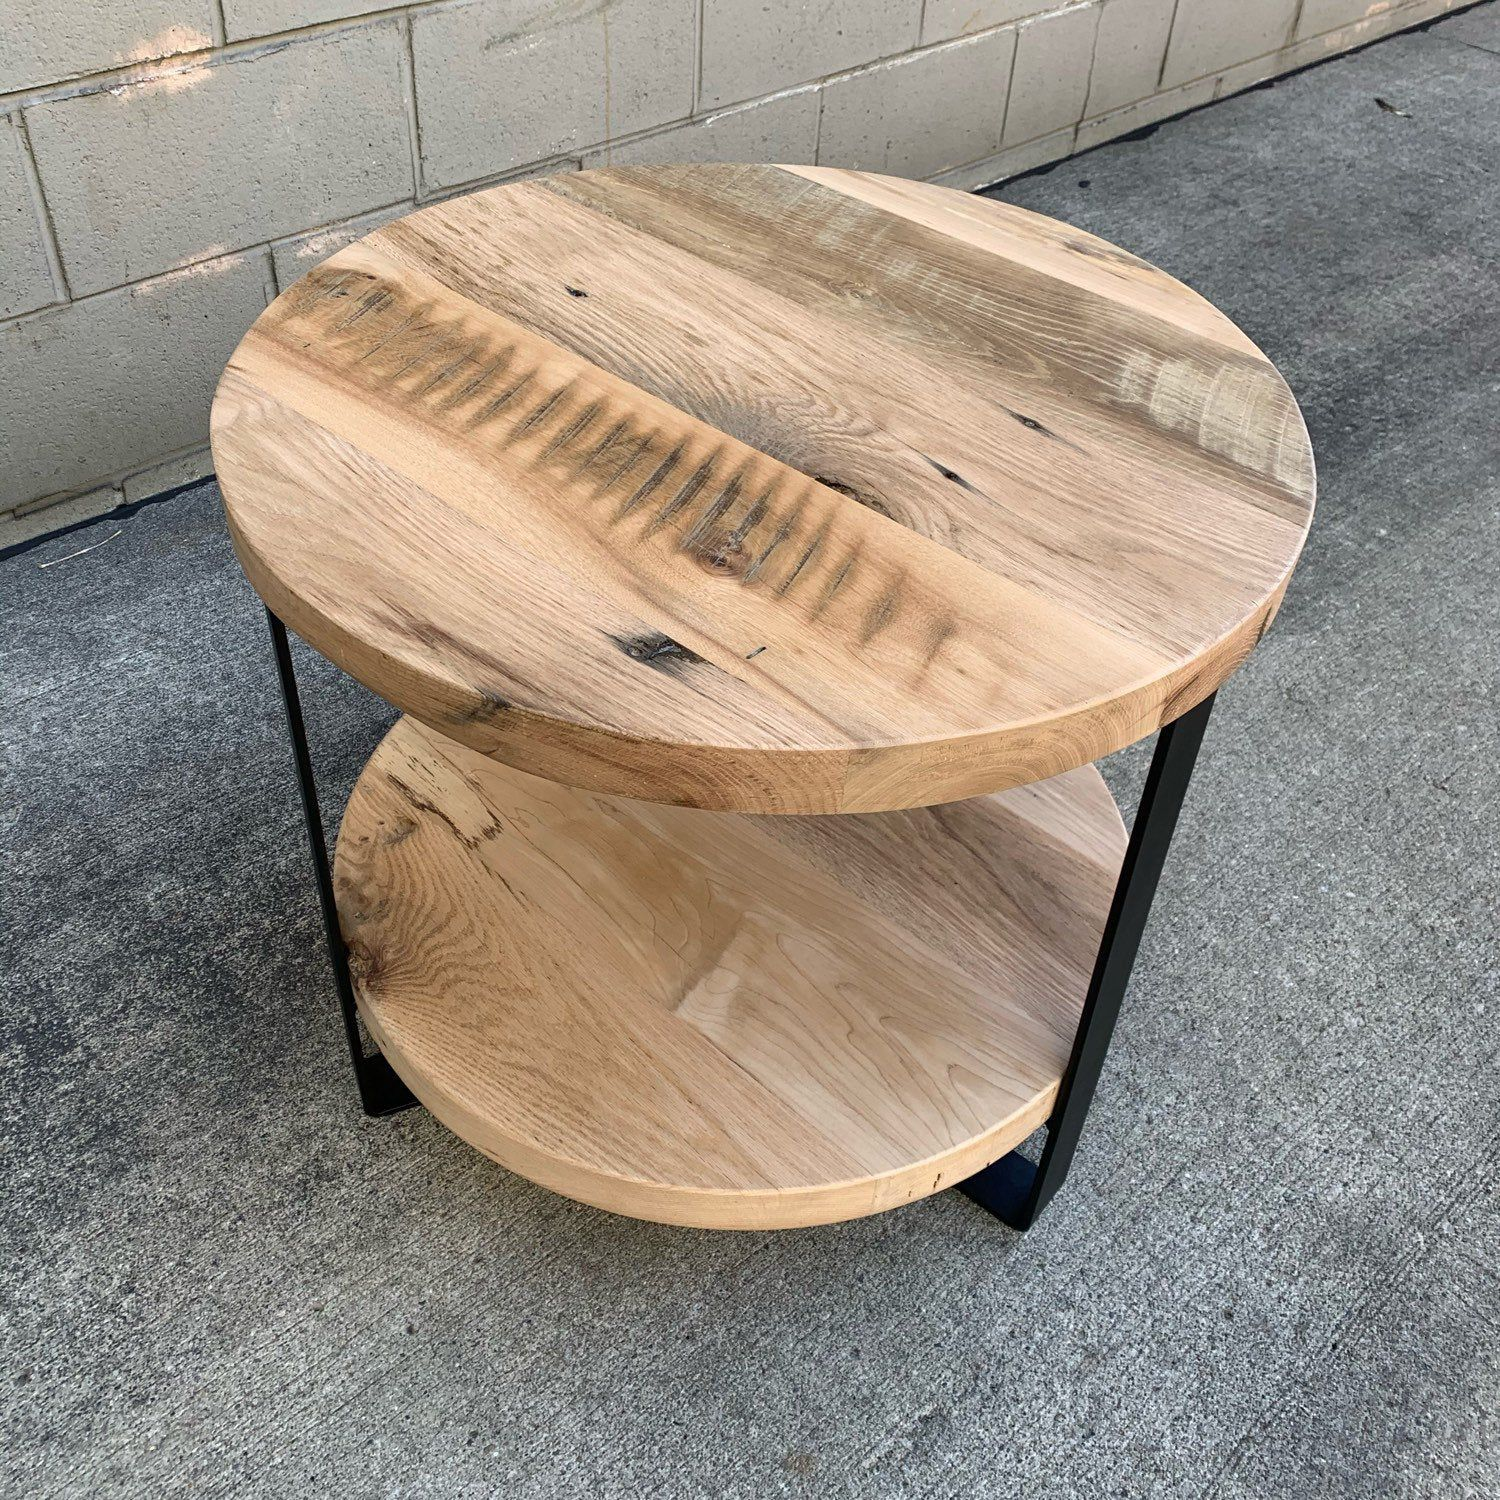 Caseconcepts2000 Shared A New Photo On Etsy In 2020 End Tables Barn Wood Reclaimed Barn Wood [ 1500 x 1500 Pixel ]